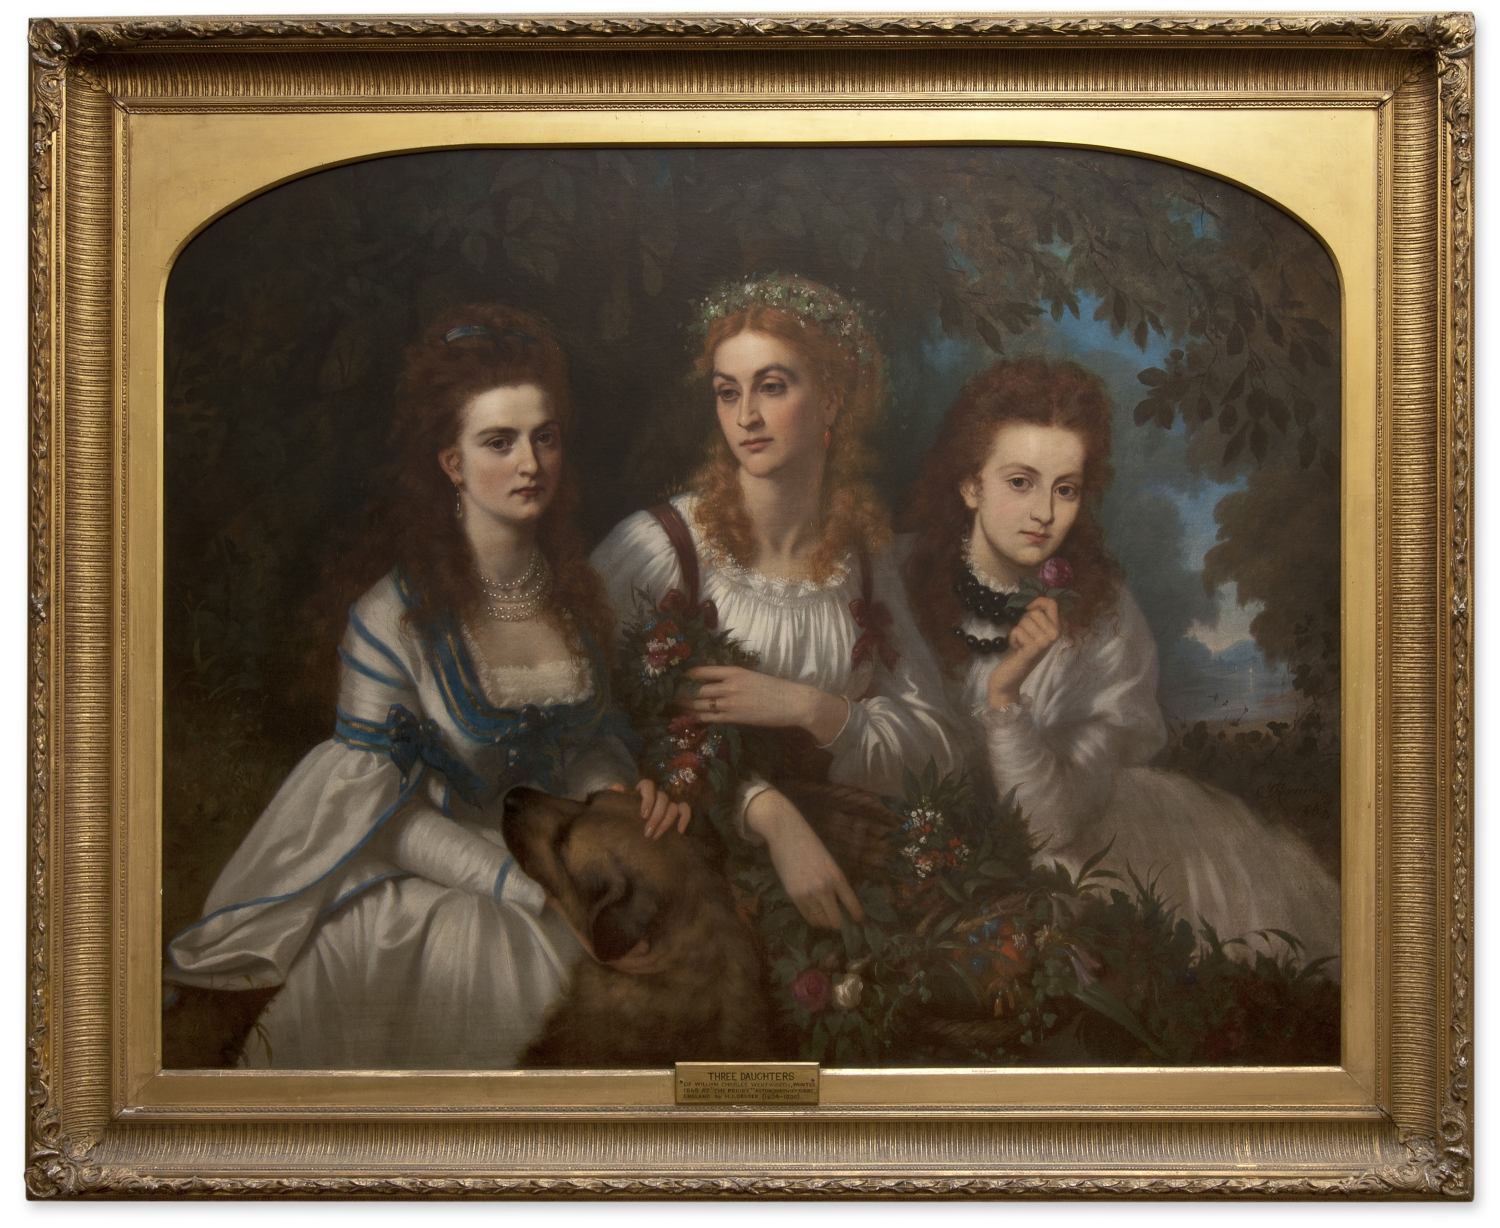 Oil painting of three women with long curly hair, the centre figure is blonde while the others have darker hair.